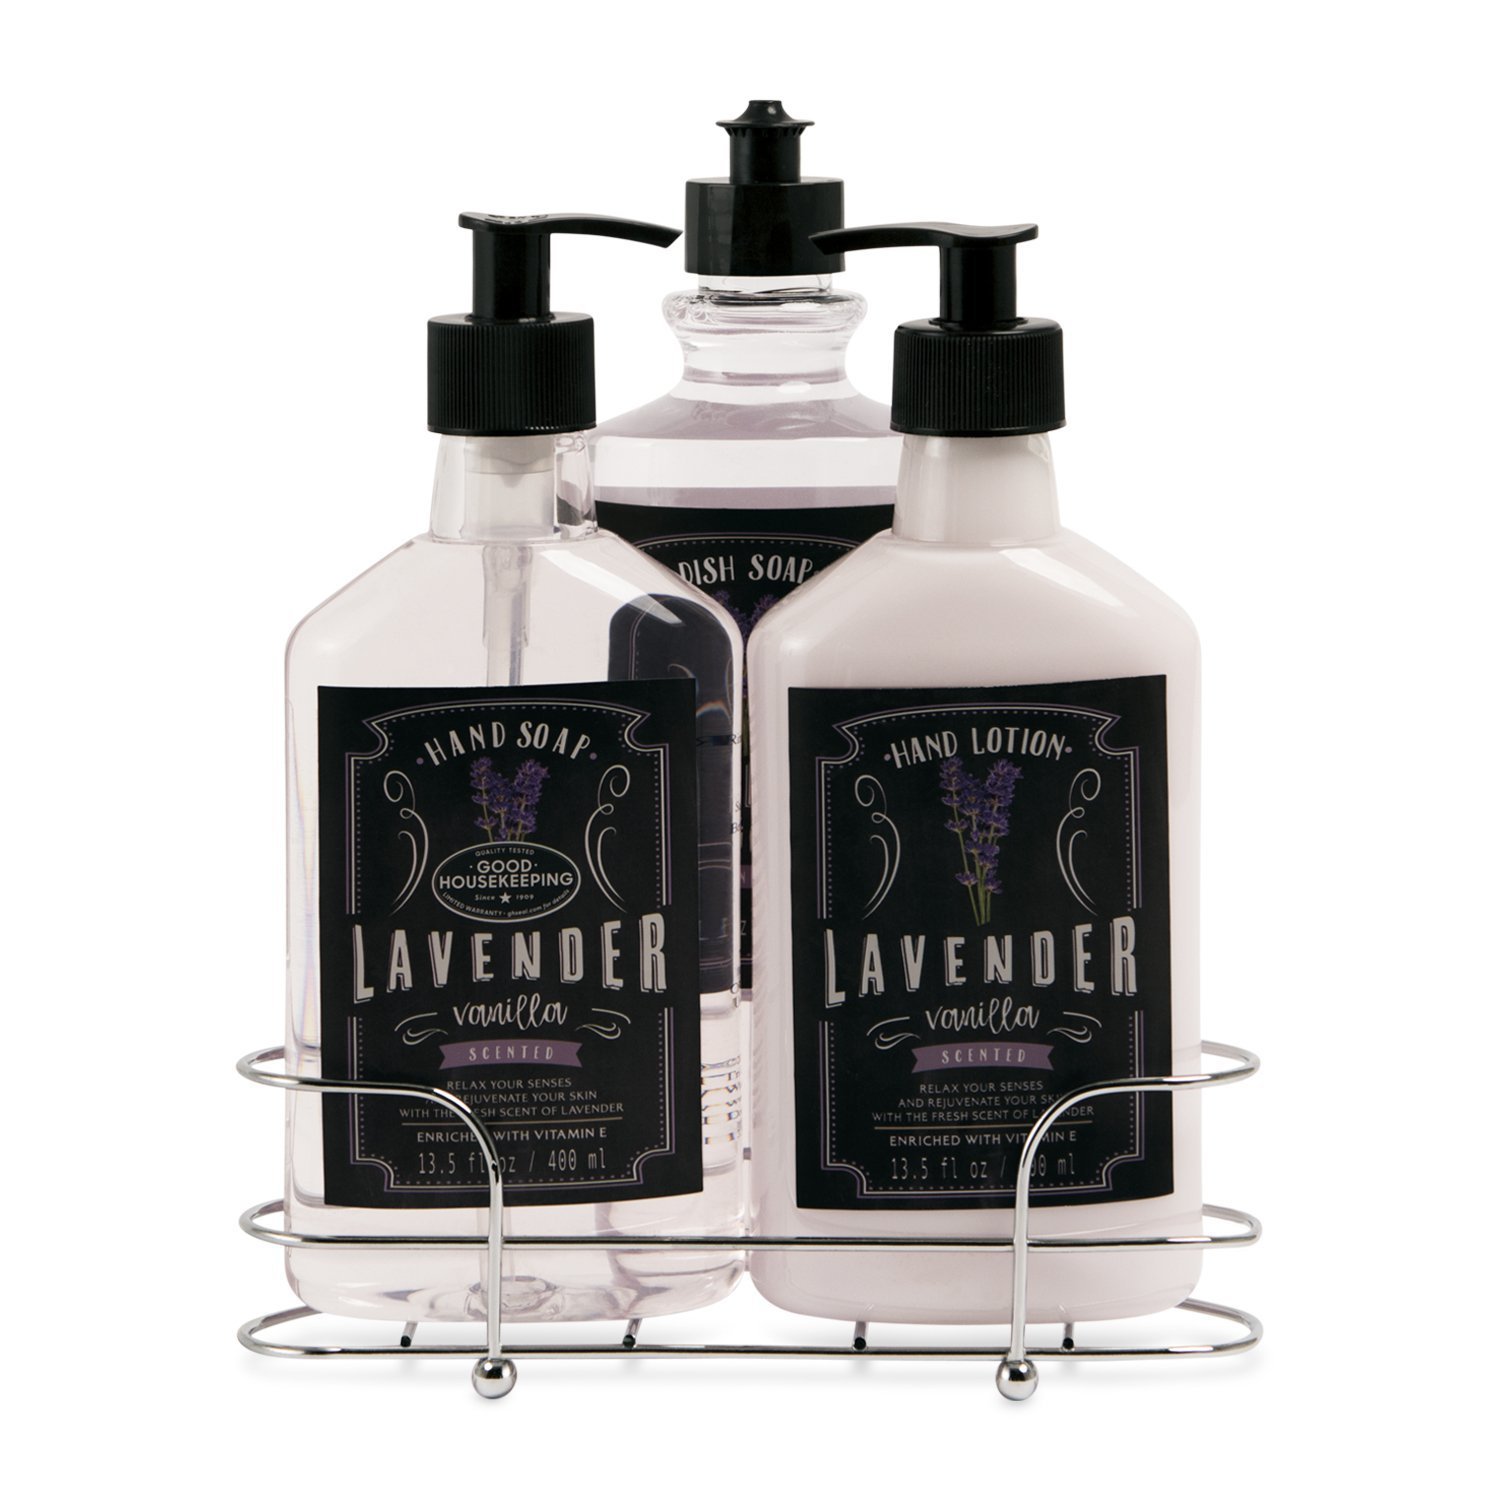 Lavender Vanilla Kitchen Soap and Lotion Gift Set